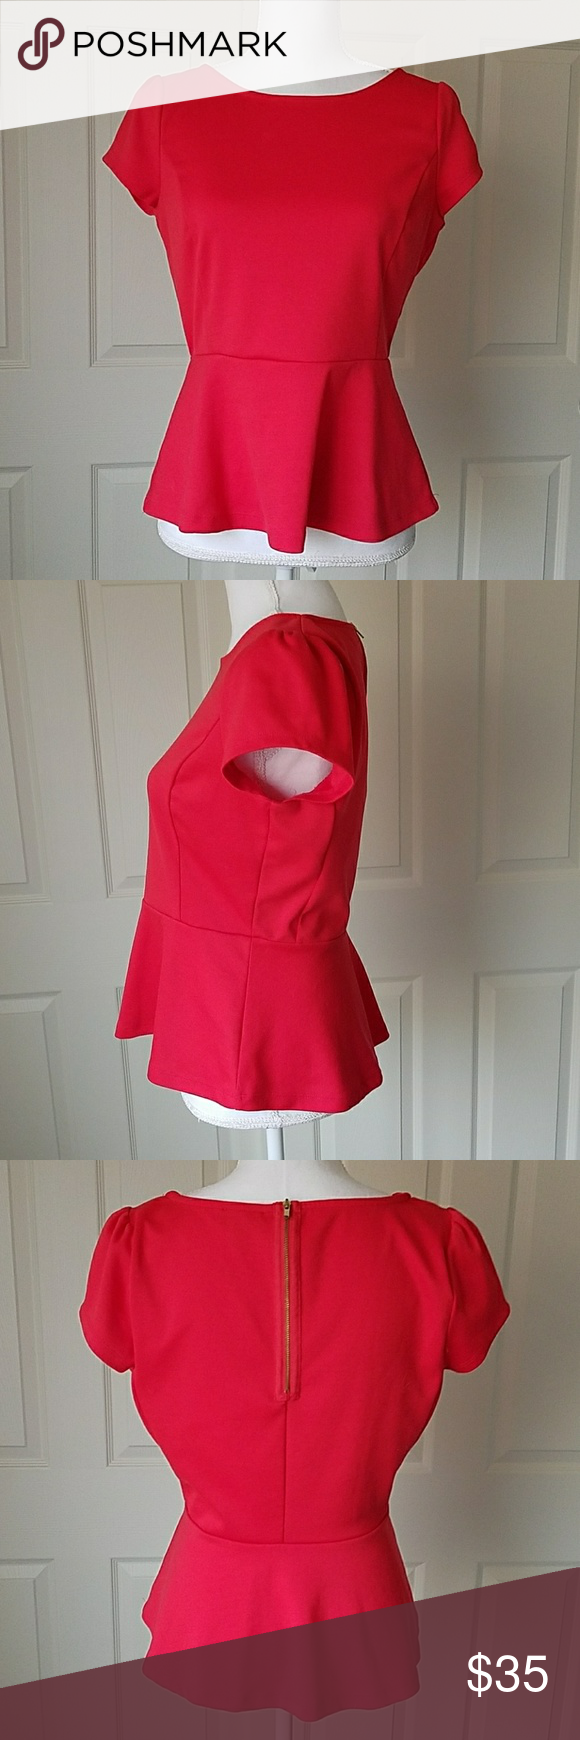 The Limited Red Peplum Top Size M | Red peplum tops, Office ...